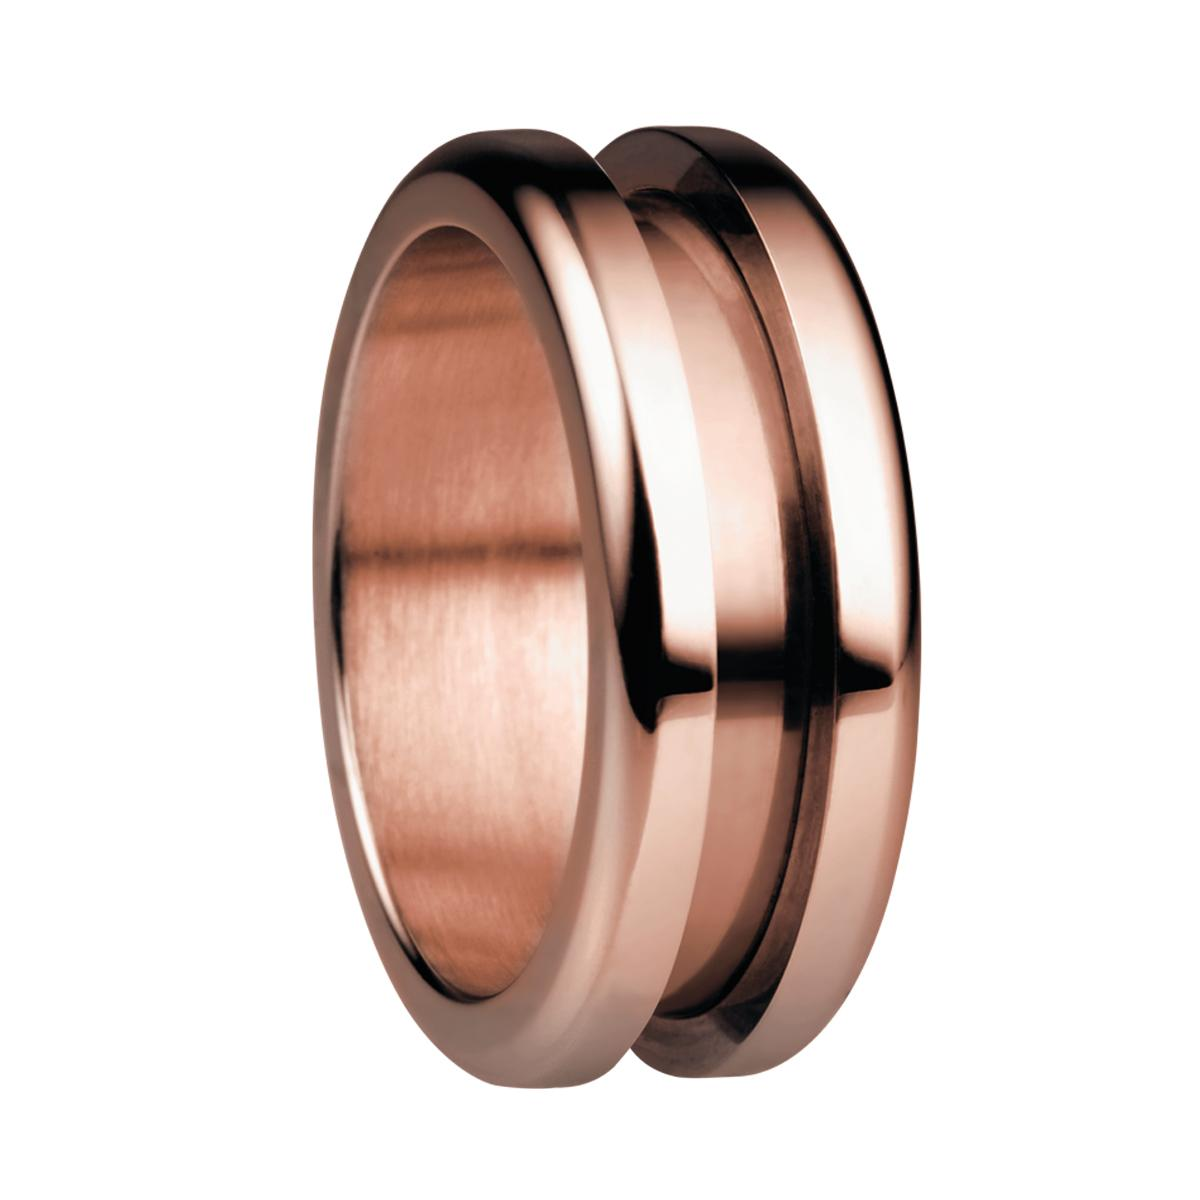 Bering Outer Ring 5203093 1